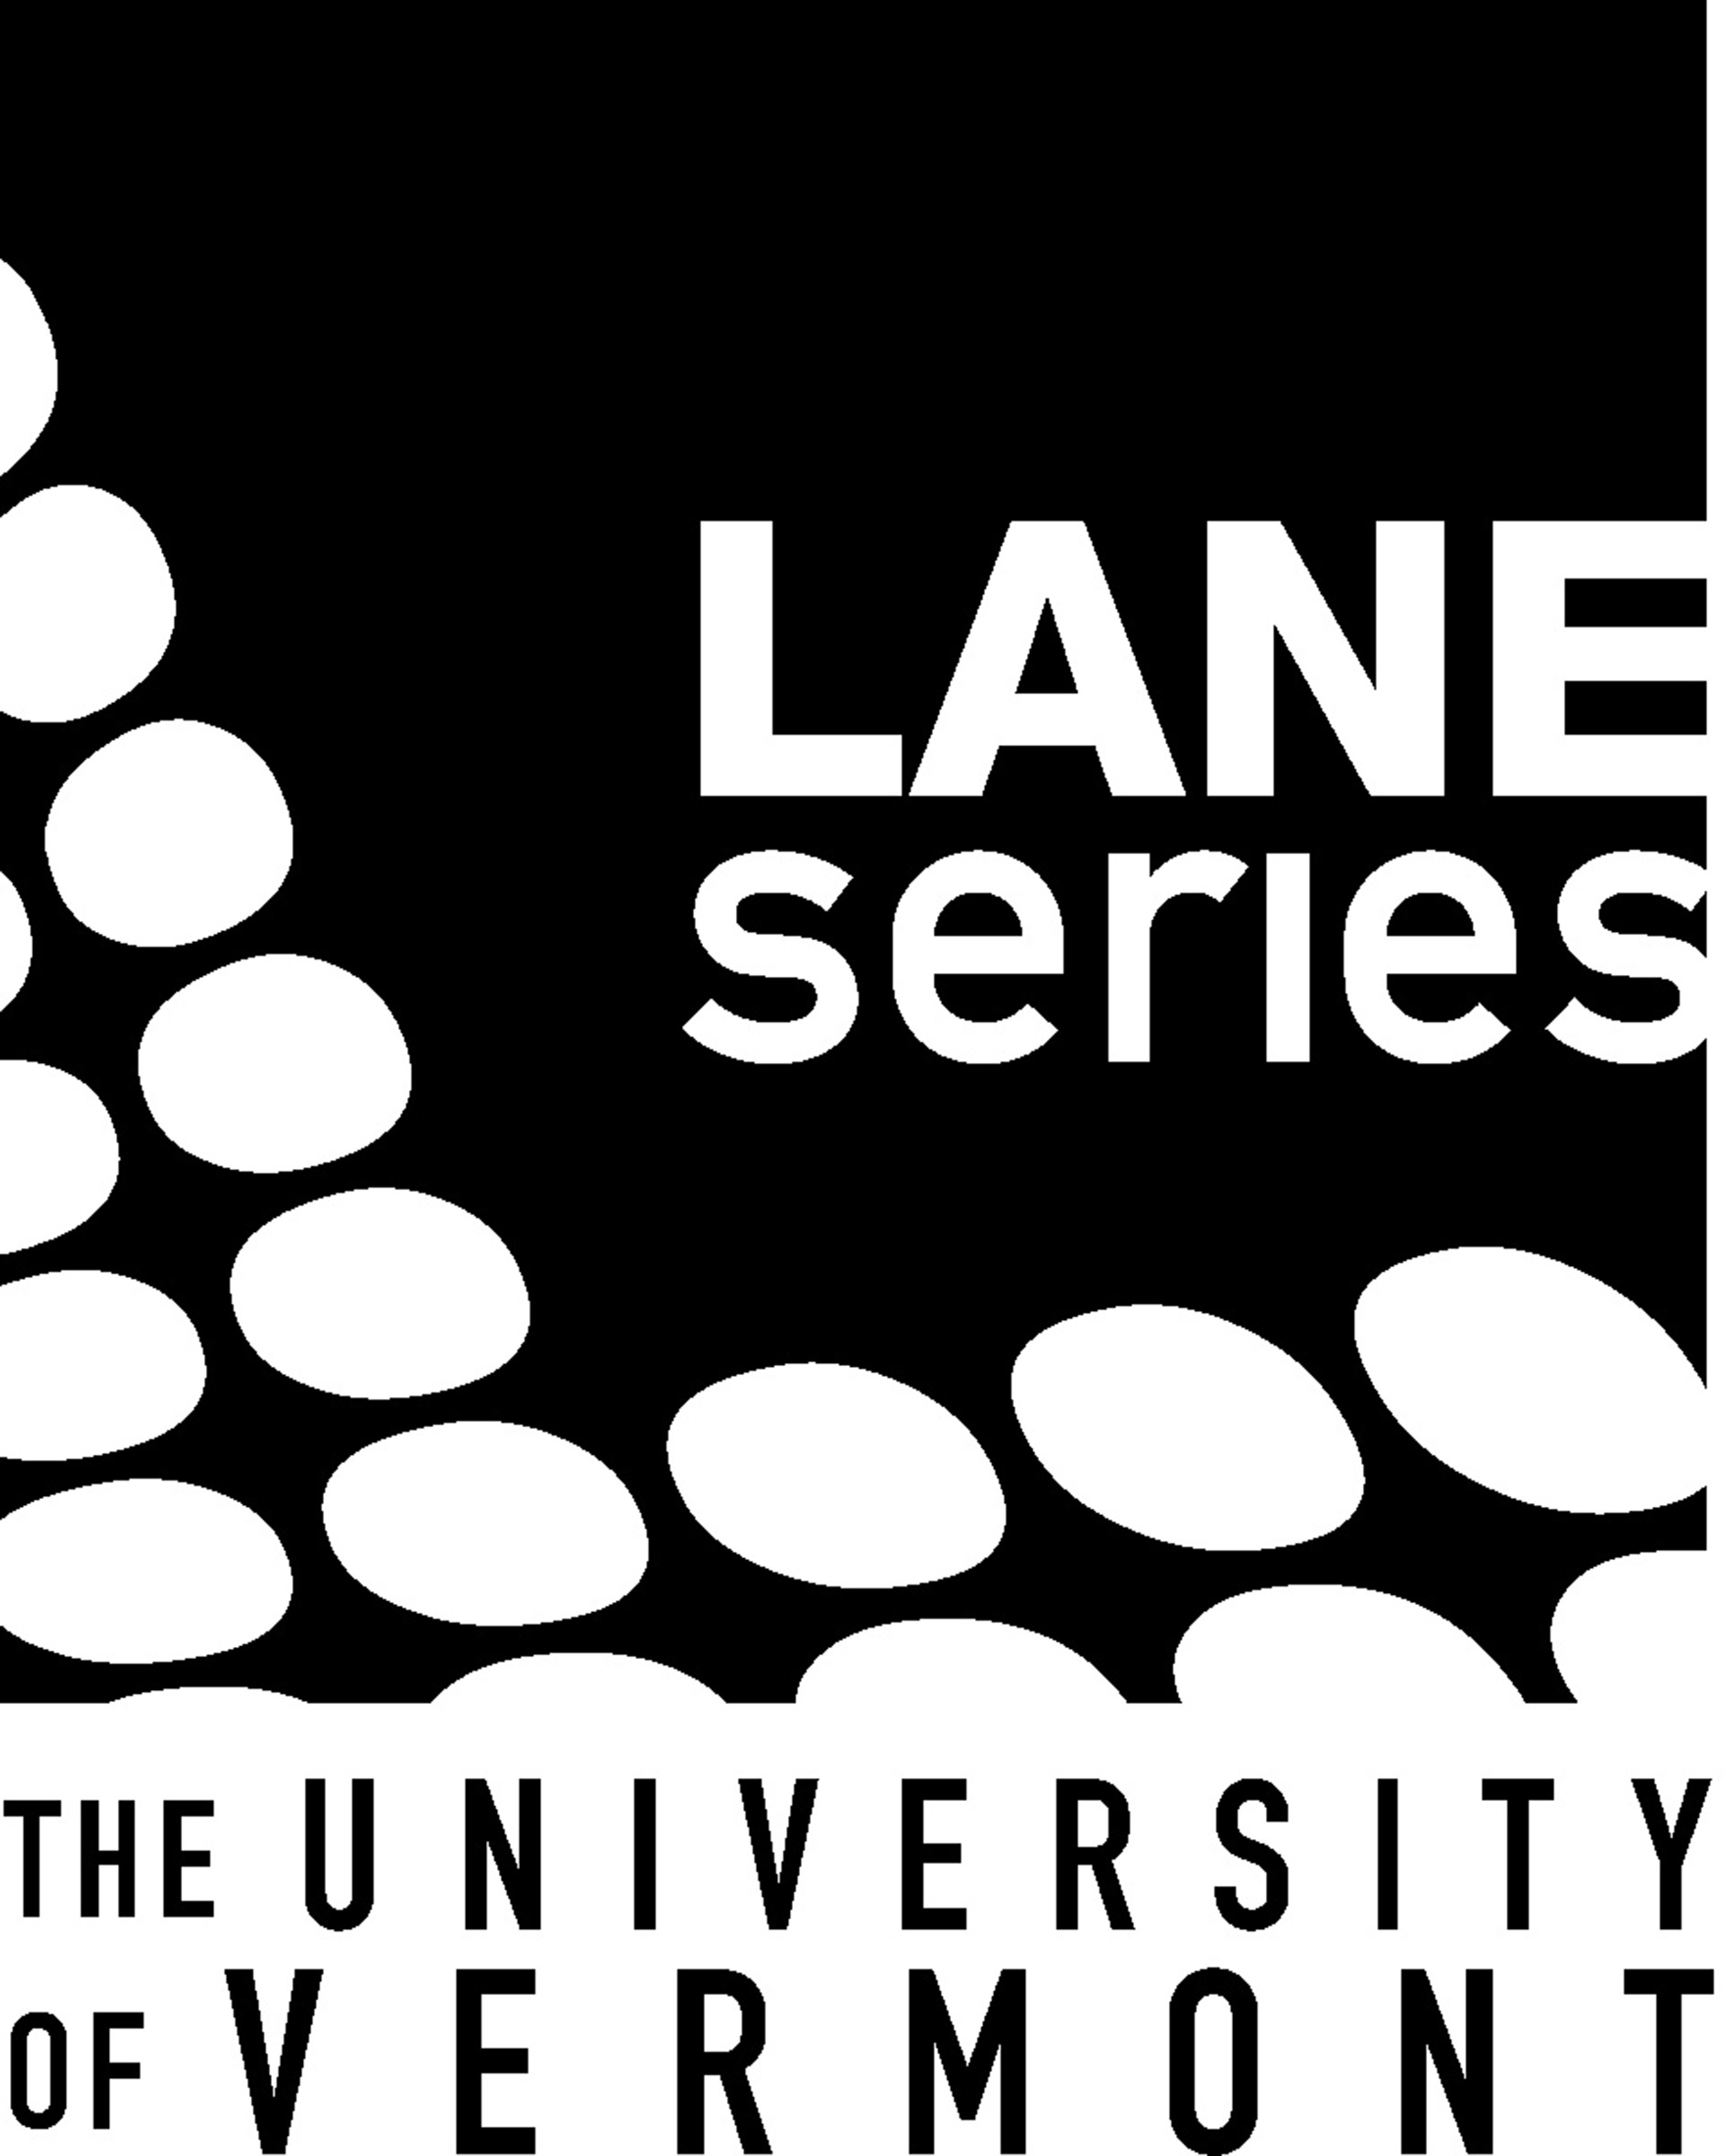 UVM Lane Series Logo